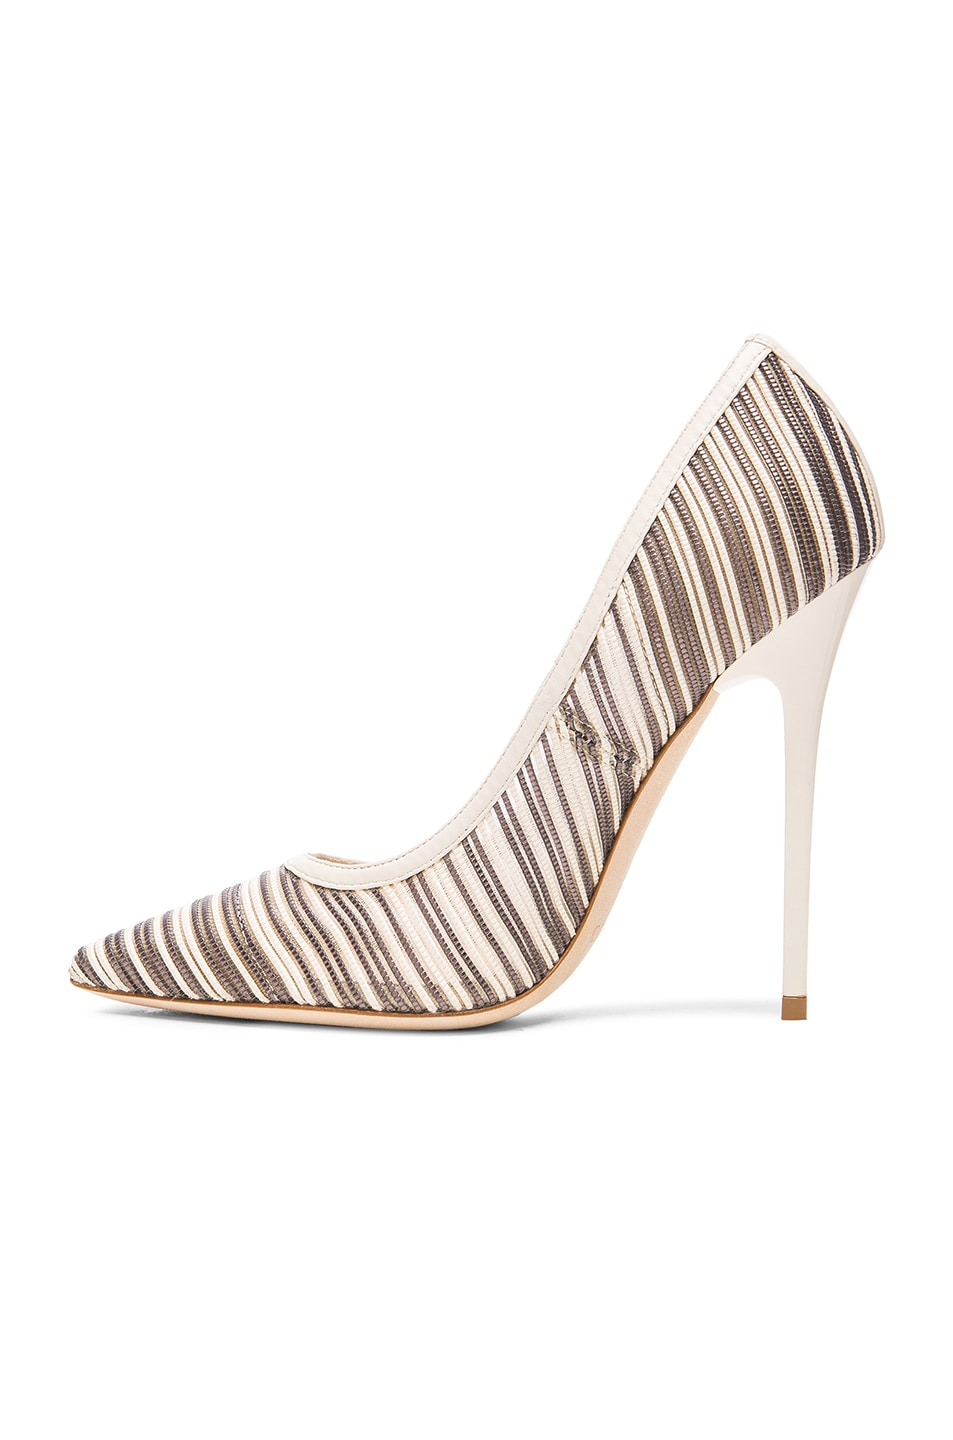 Image 5 of Jimmy Choo Metallic Anouk Mesh Pumps in Off White Mix